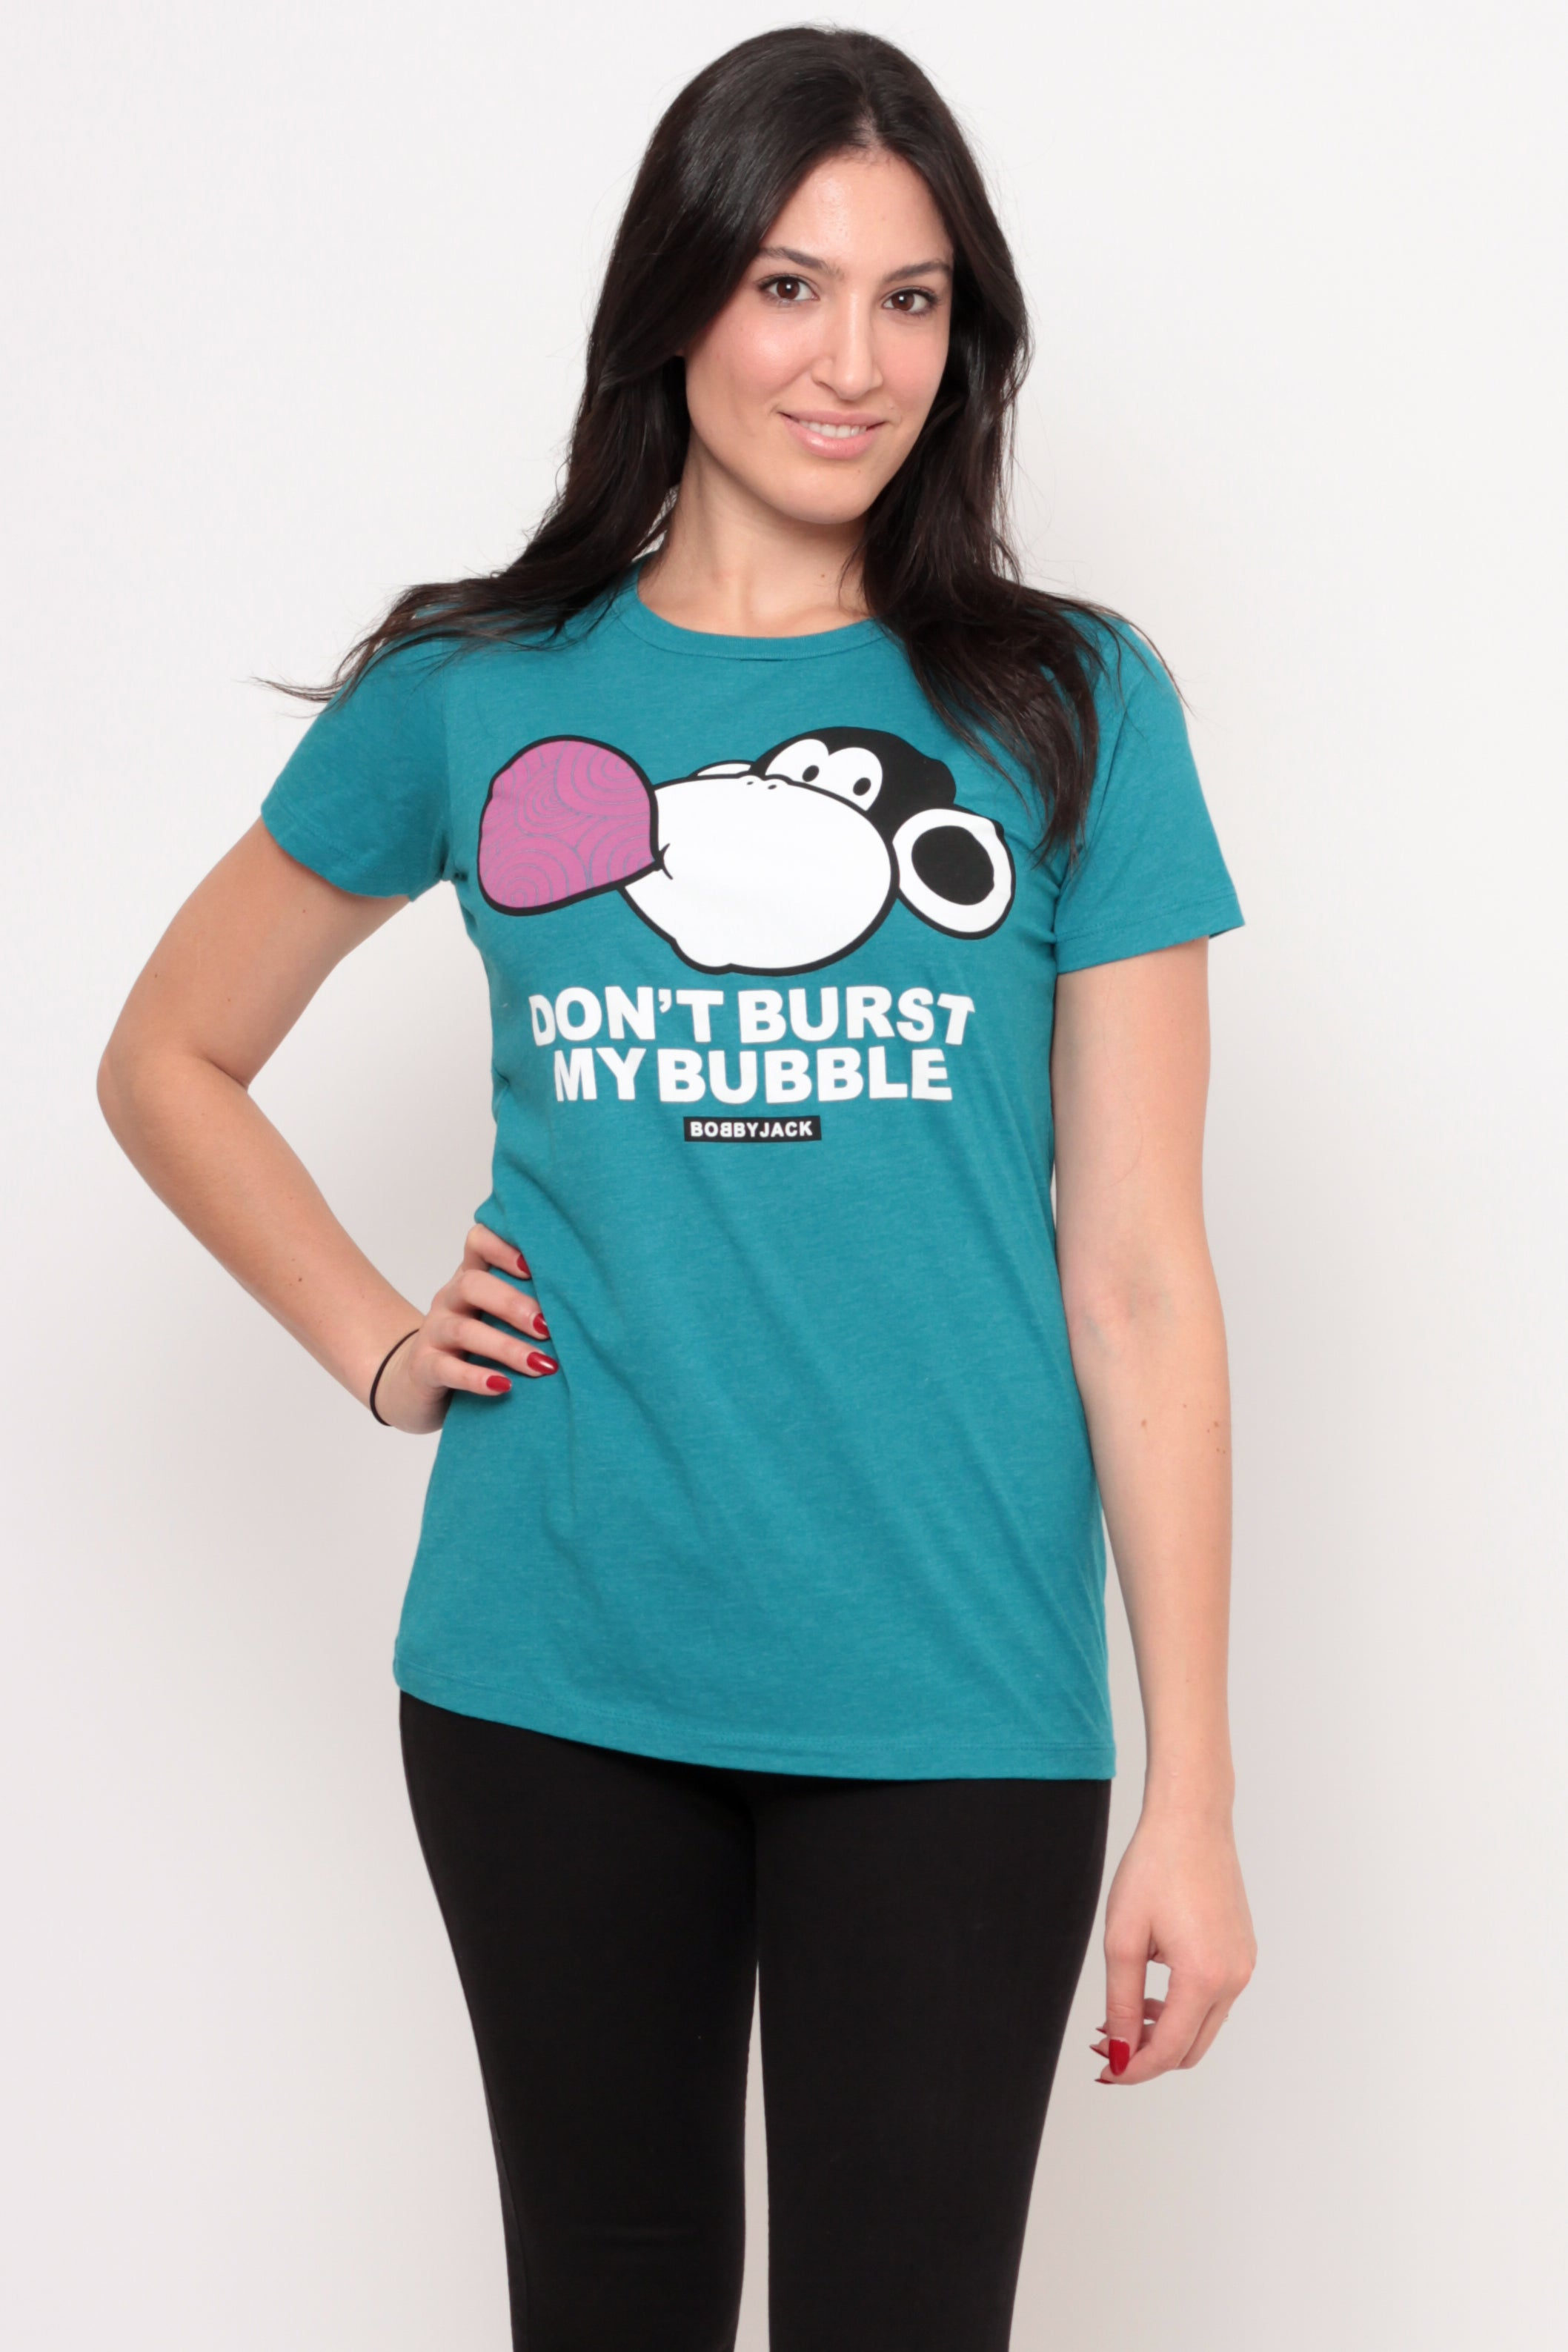 Don't Burst My Bubble | Women's Size - Teal